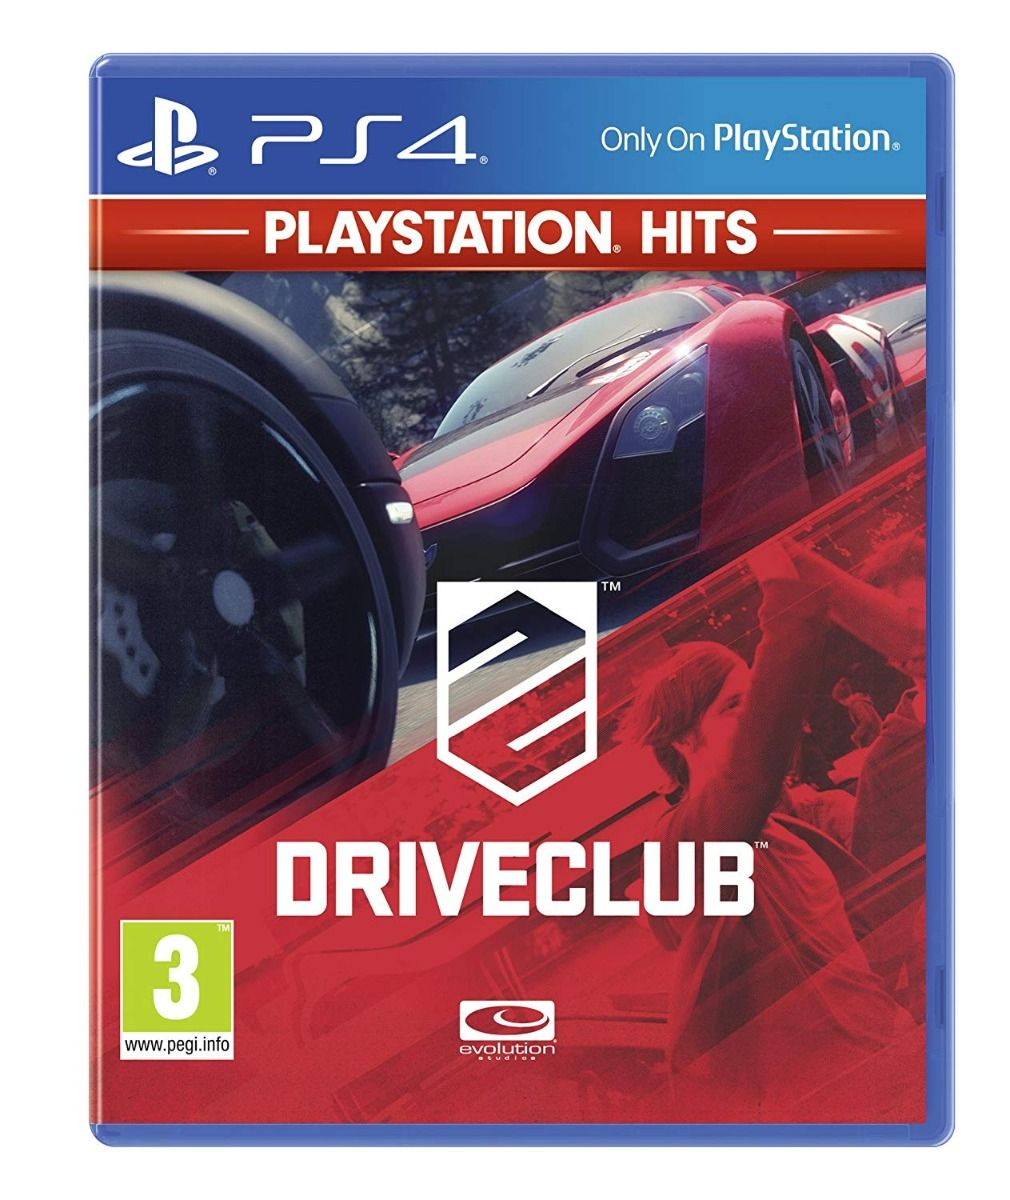 Driveclub - PlayStation Hits (PS4)